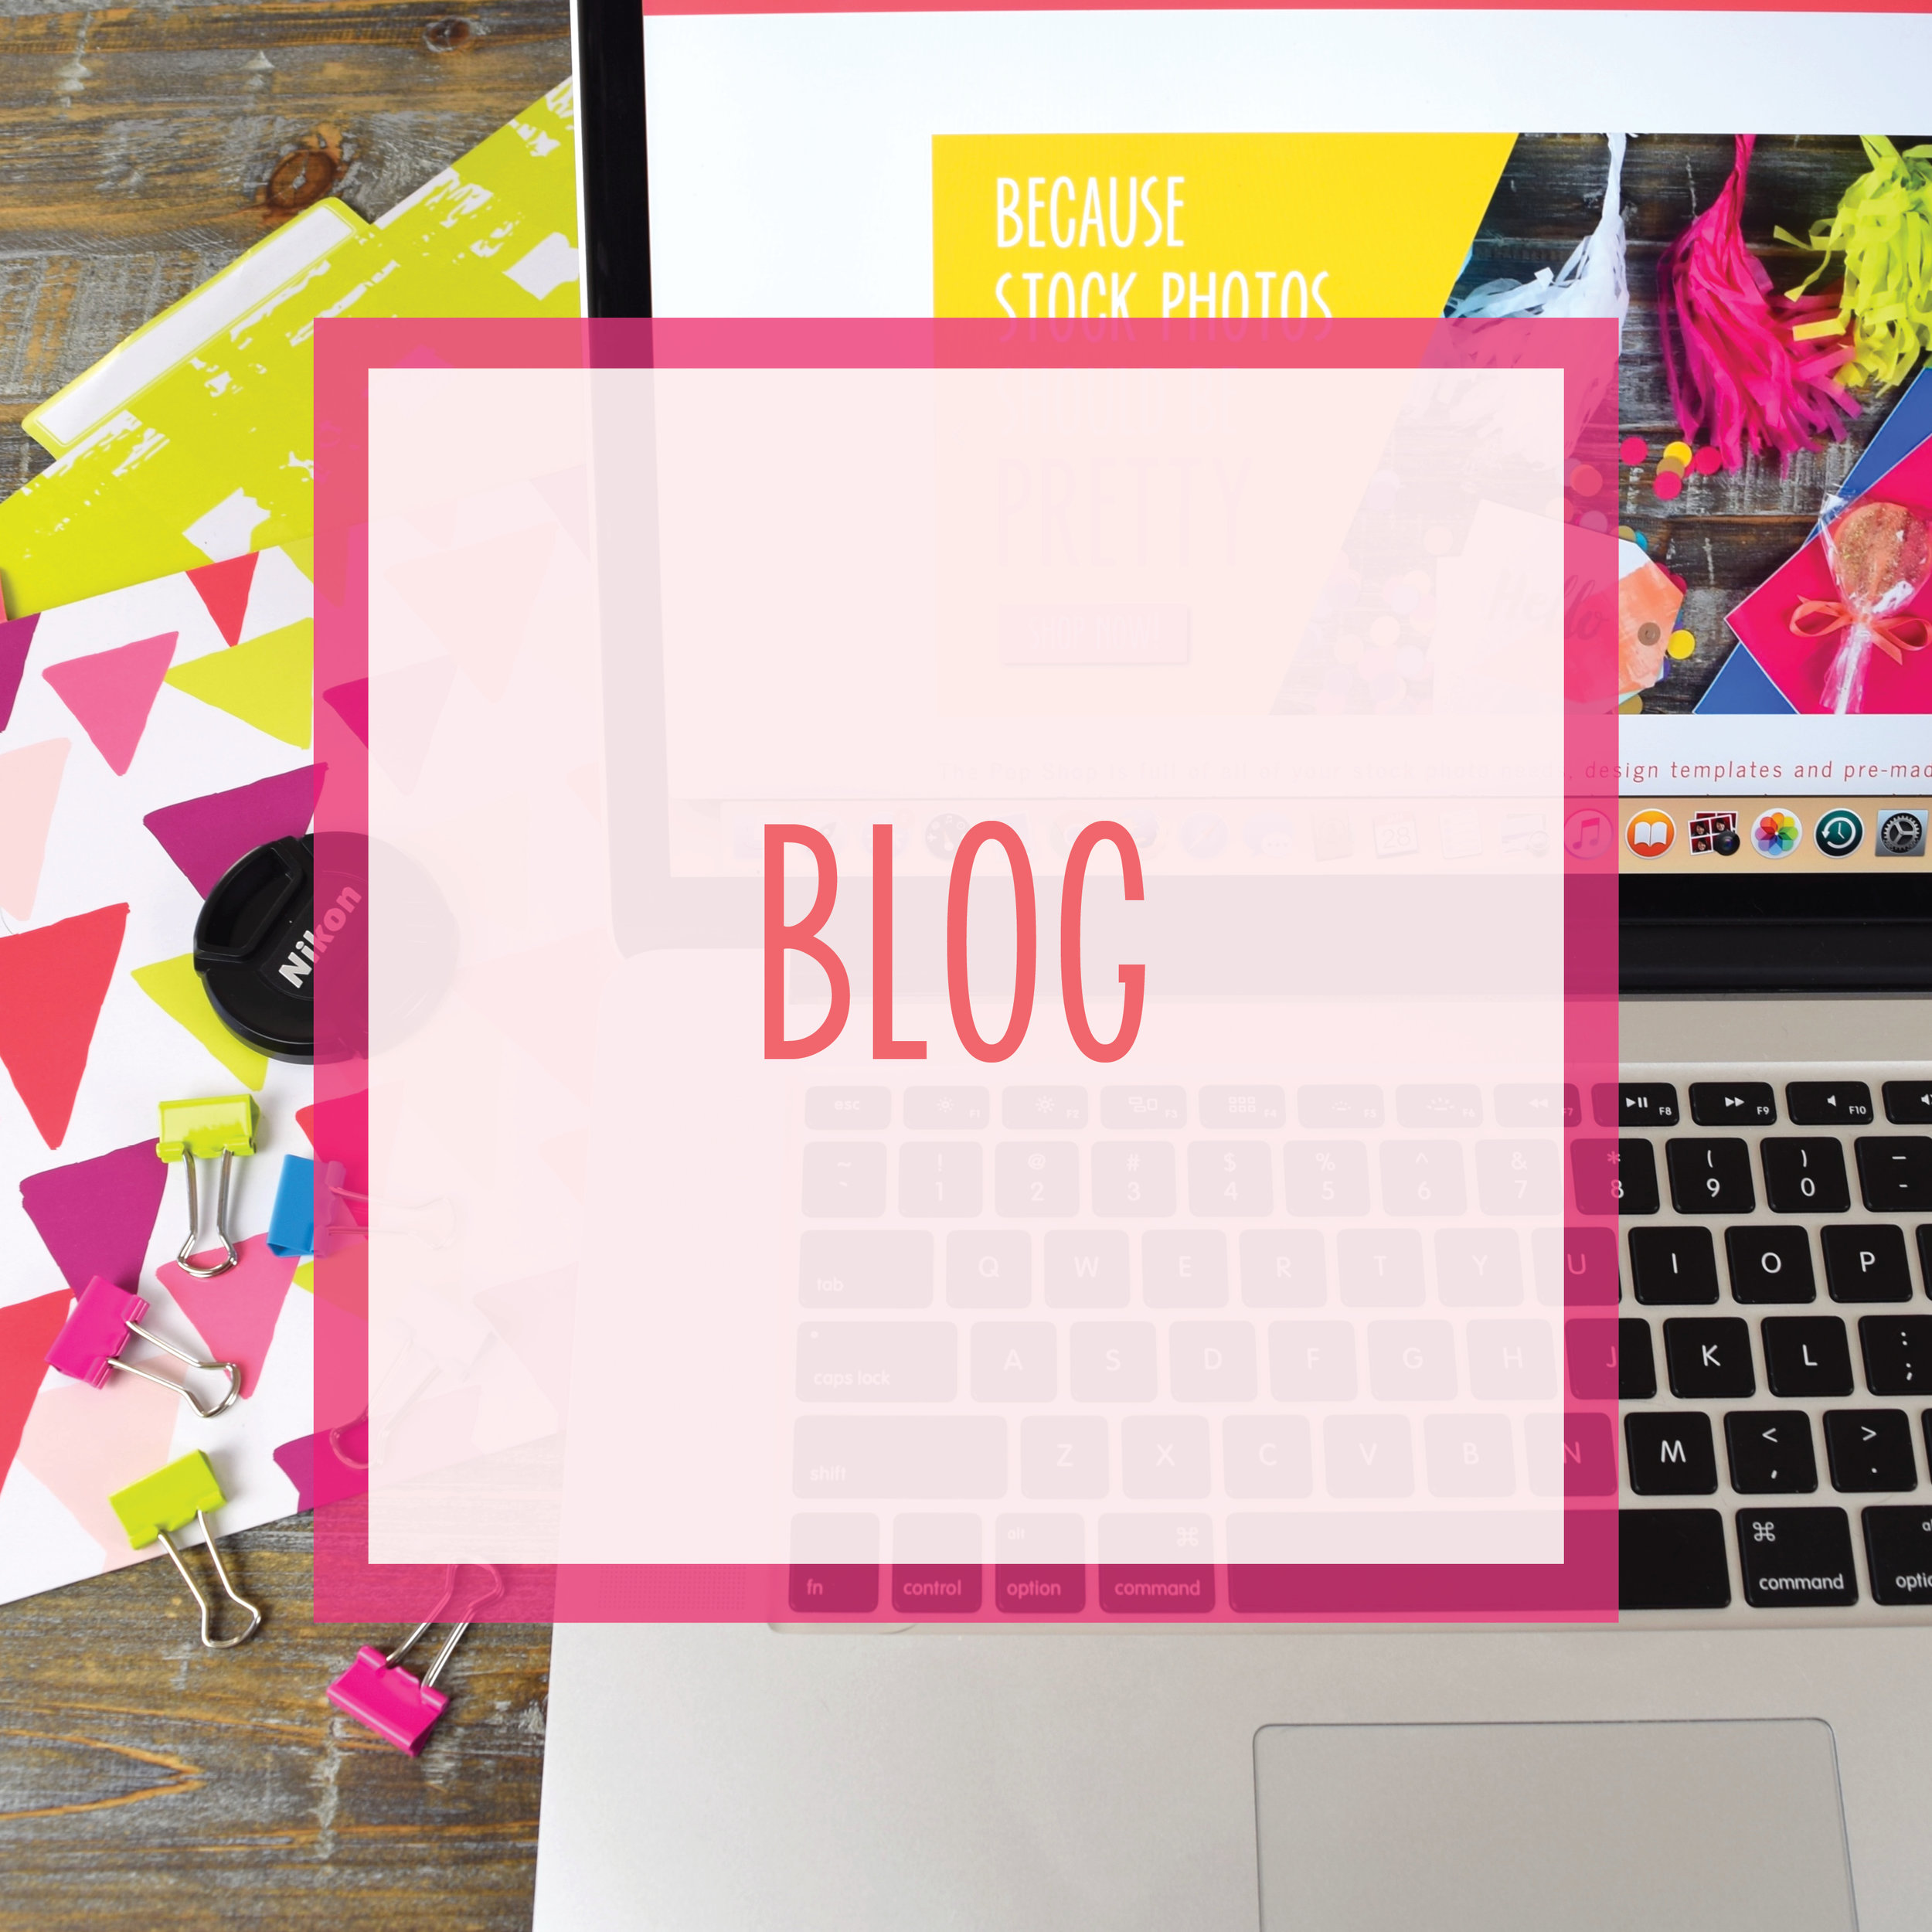 Bold & Pop: Blog covering business, branding, Squarespace website design, and social media marketing